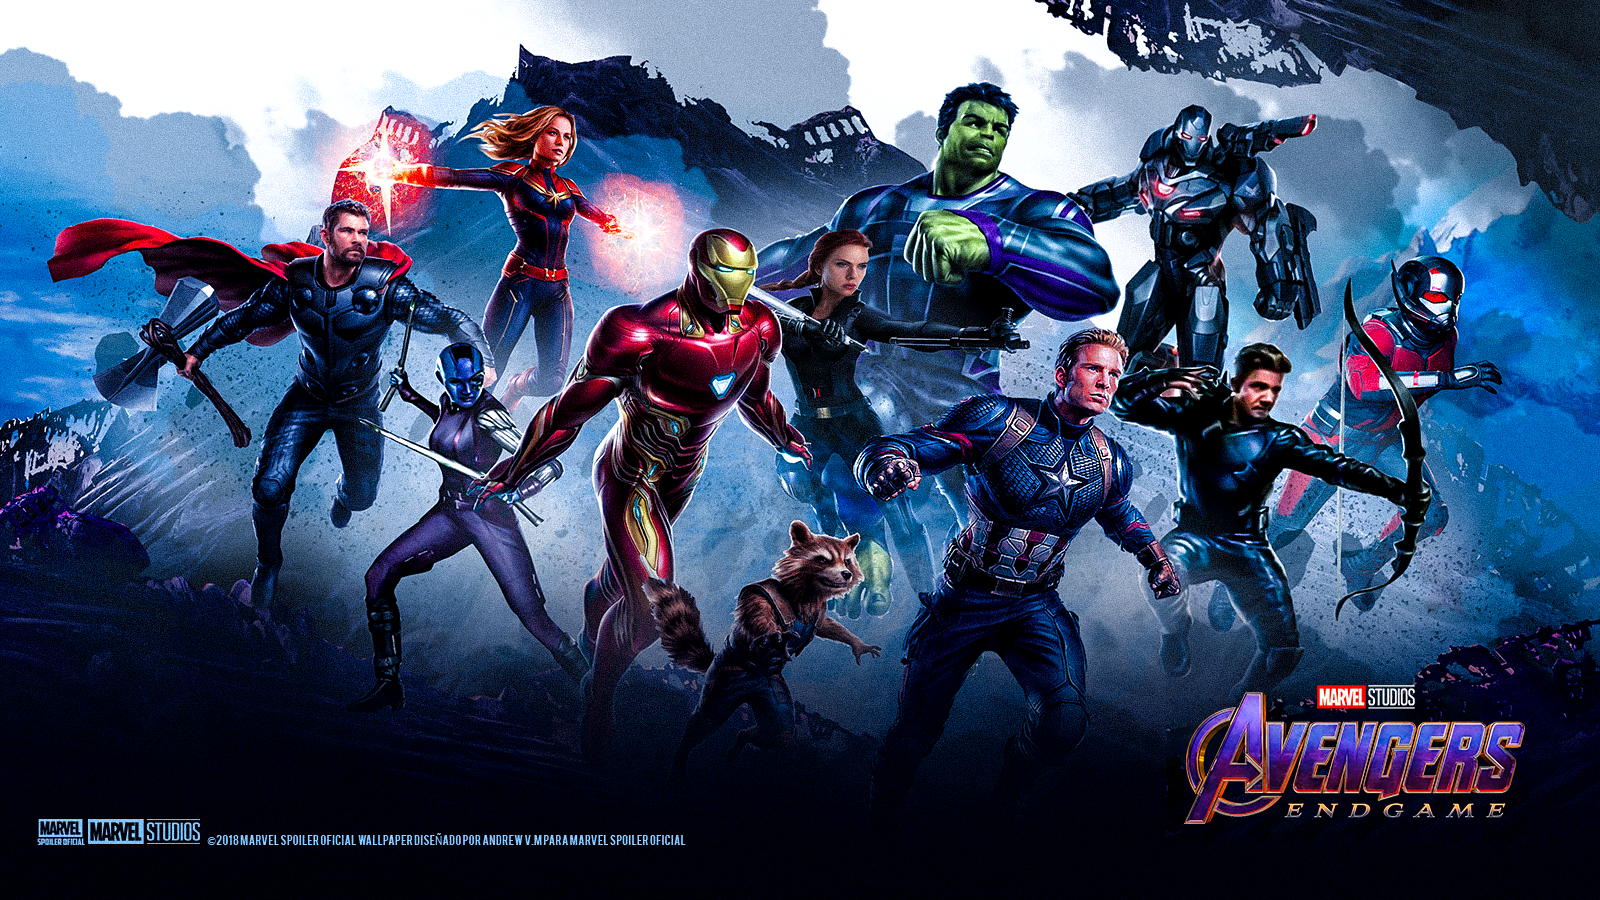 Avengers Endgame Concept Art Hd Play Movies One